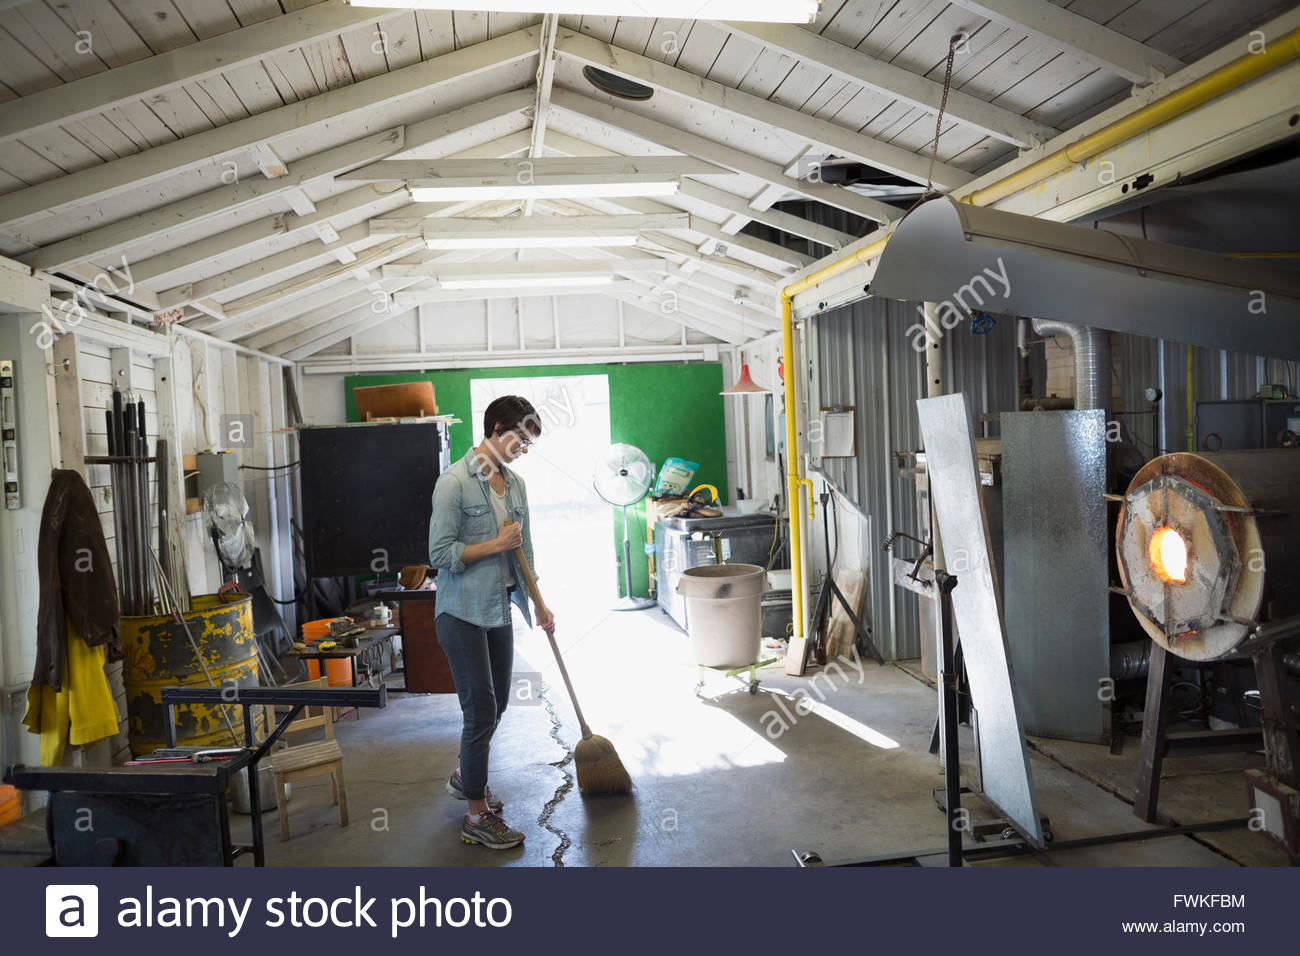 Female glassblower sweeping in workshop - Stock Image